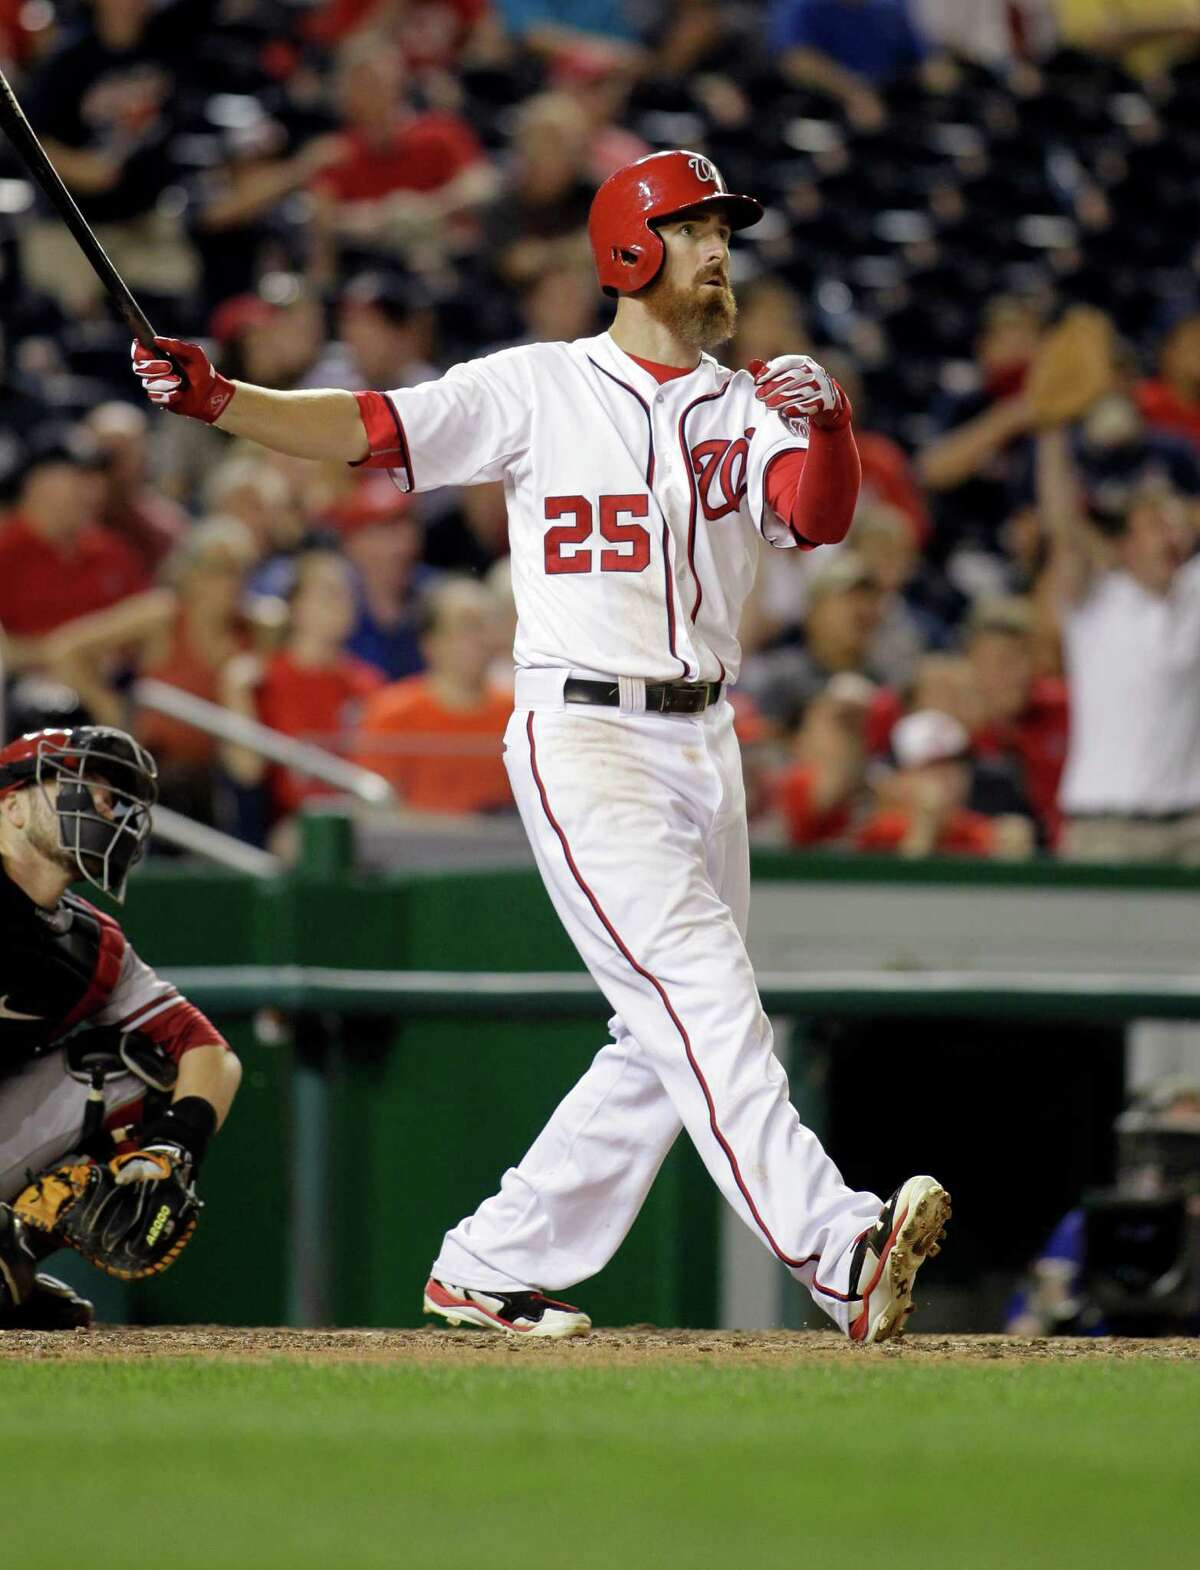 Washington Nationals?' Adam LaRoche follows through on a game-winning solo home run during the 11th inning of a baseball game against the Arizona Diamondbacks, Monday, Aug. 18, 2014, in Washington. The Nationals won 5-4 in 11 innings. (AP Photo/Luis M. Alvarez) ORG XMIT: NAT105